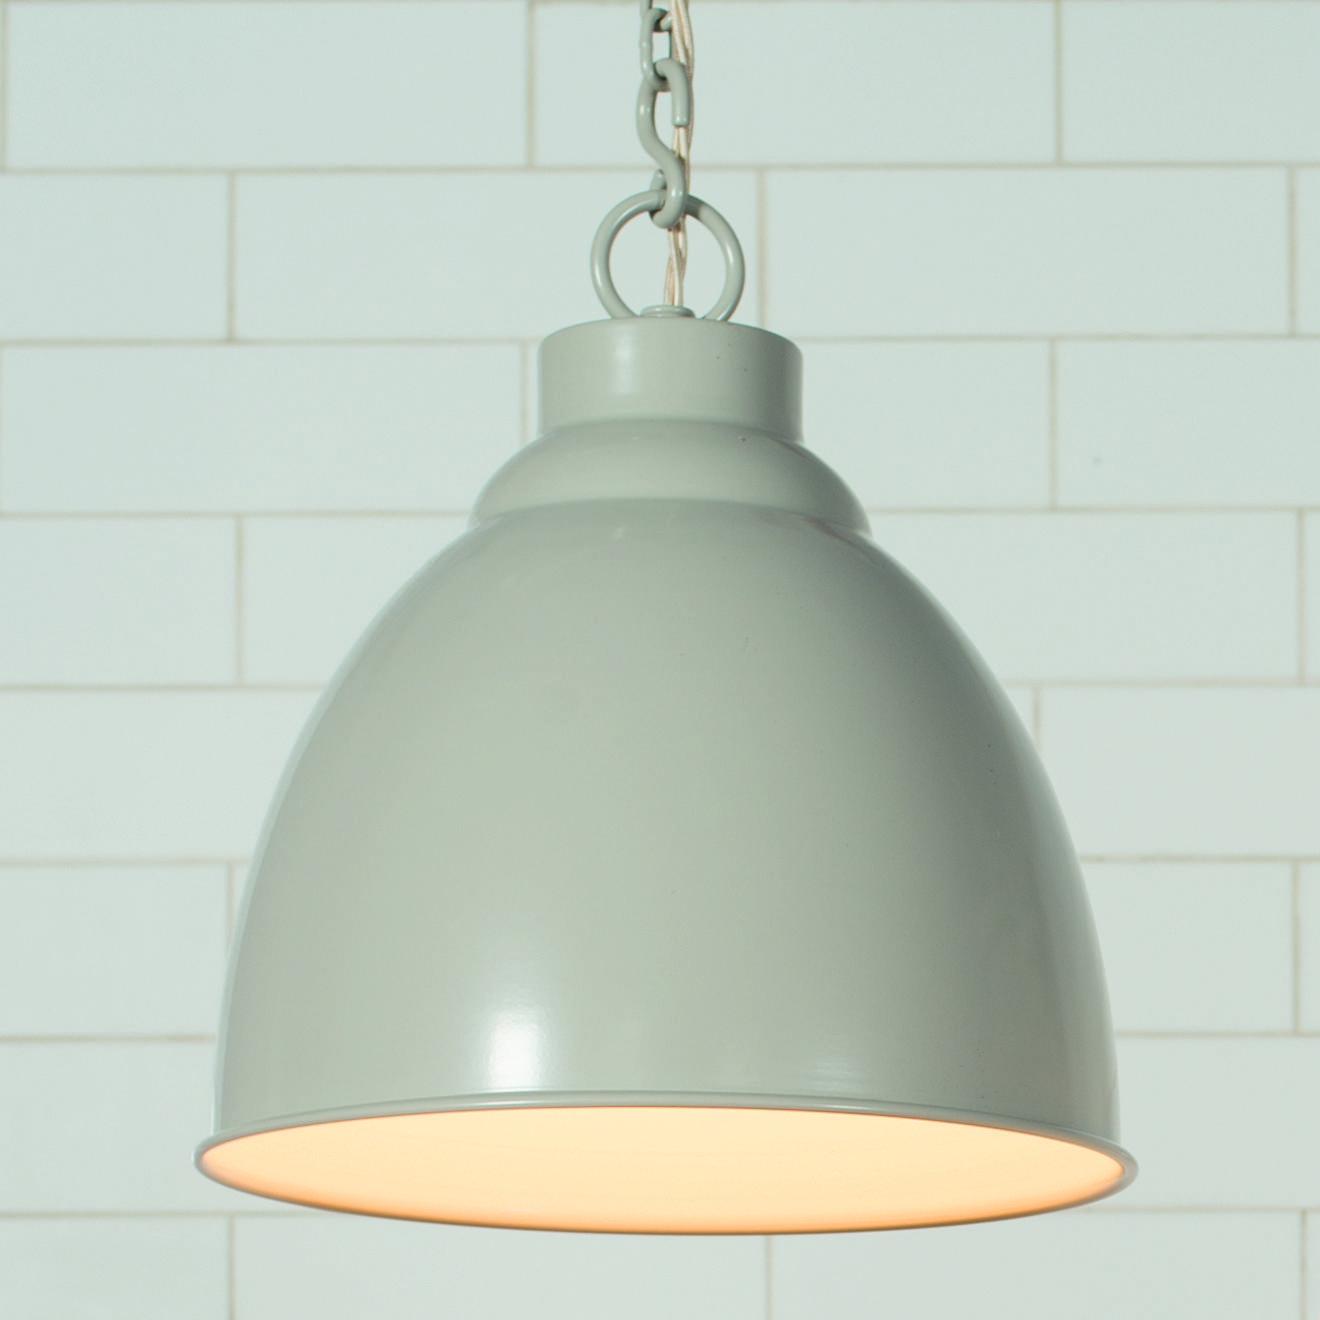 industrial look lighting. the wharf #pendant is our new #retro look #light with an industrial feel lighting t